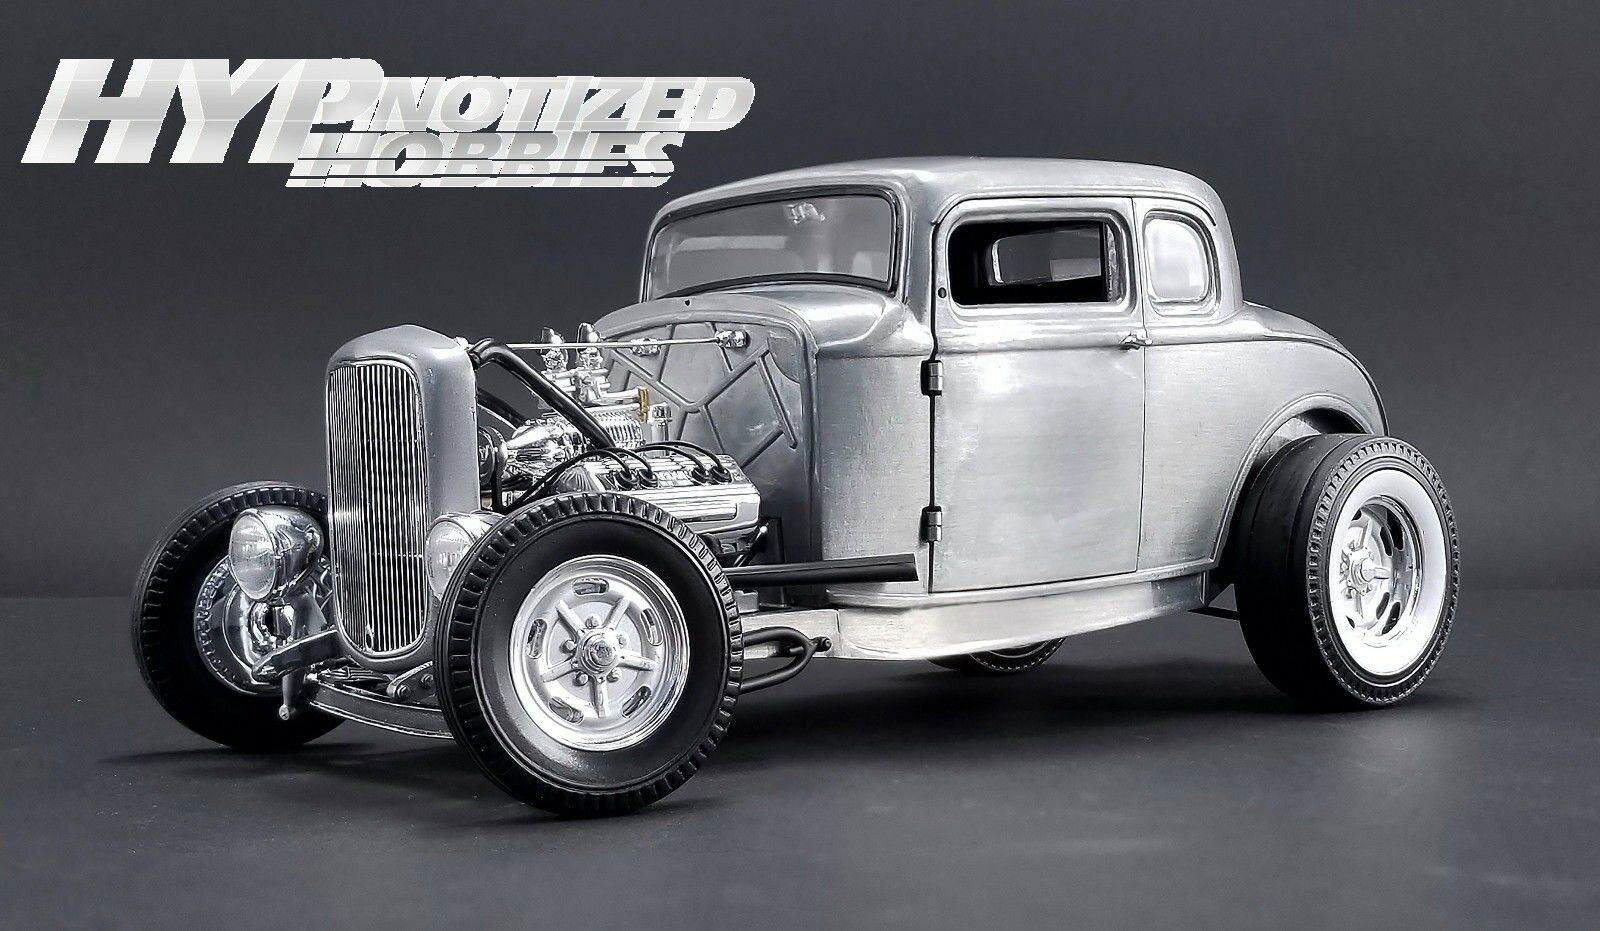 ACME 1:18 1932 FORD 5 WINDOW HAMMERED STEEL DIE-CAST BARE METAL A1805013